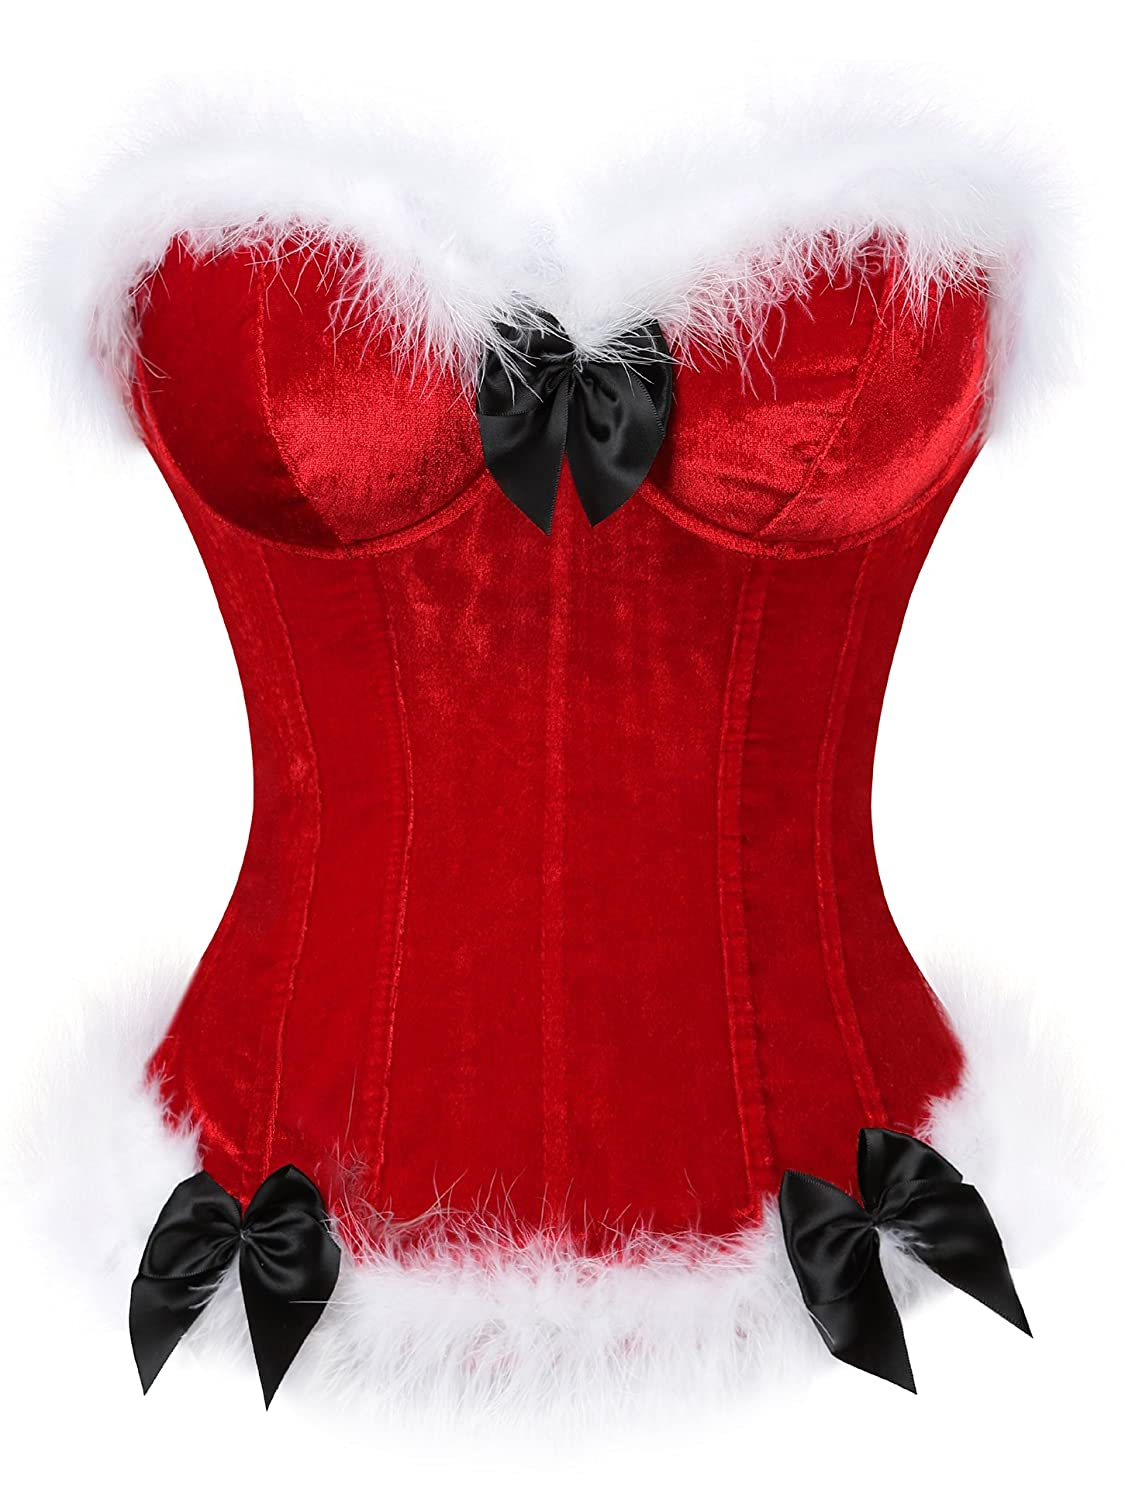 aa1812d16 Top 10 wholesale Corsets And Bustiers - Chinabrands.com